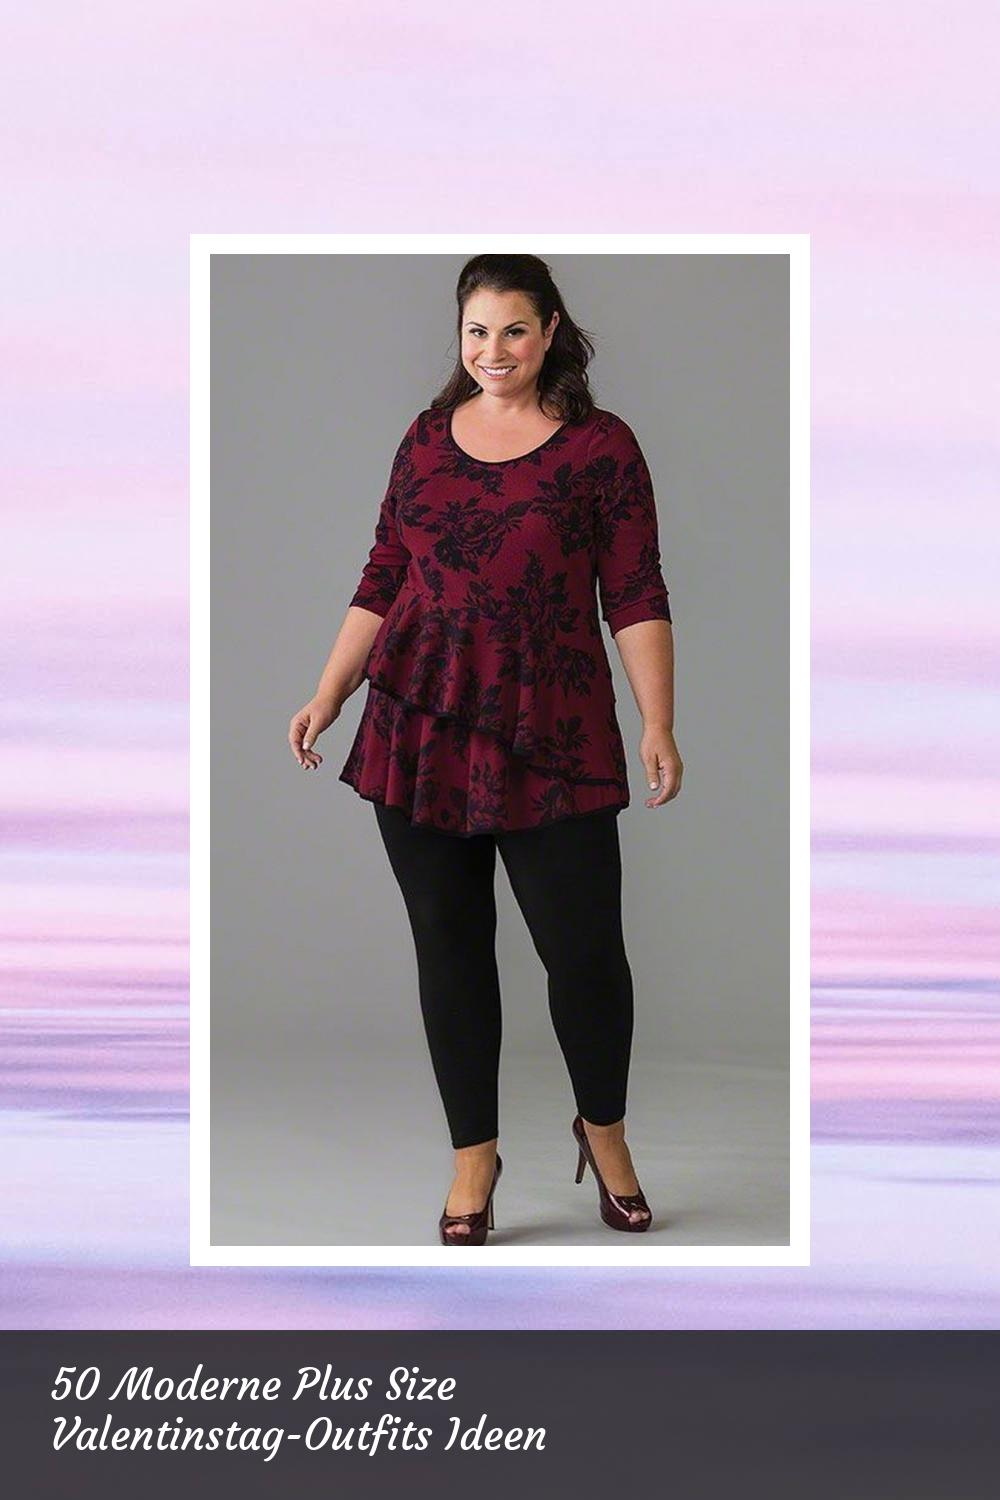 50 Moderne Plus Size Valentinstag-Outfits Ideen 48